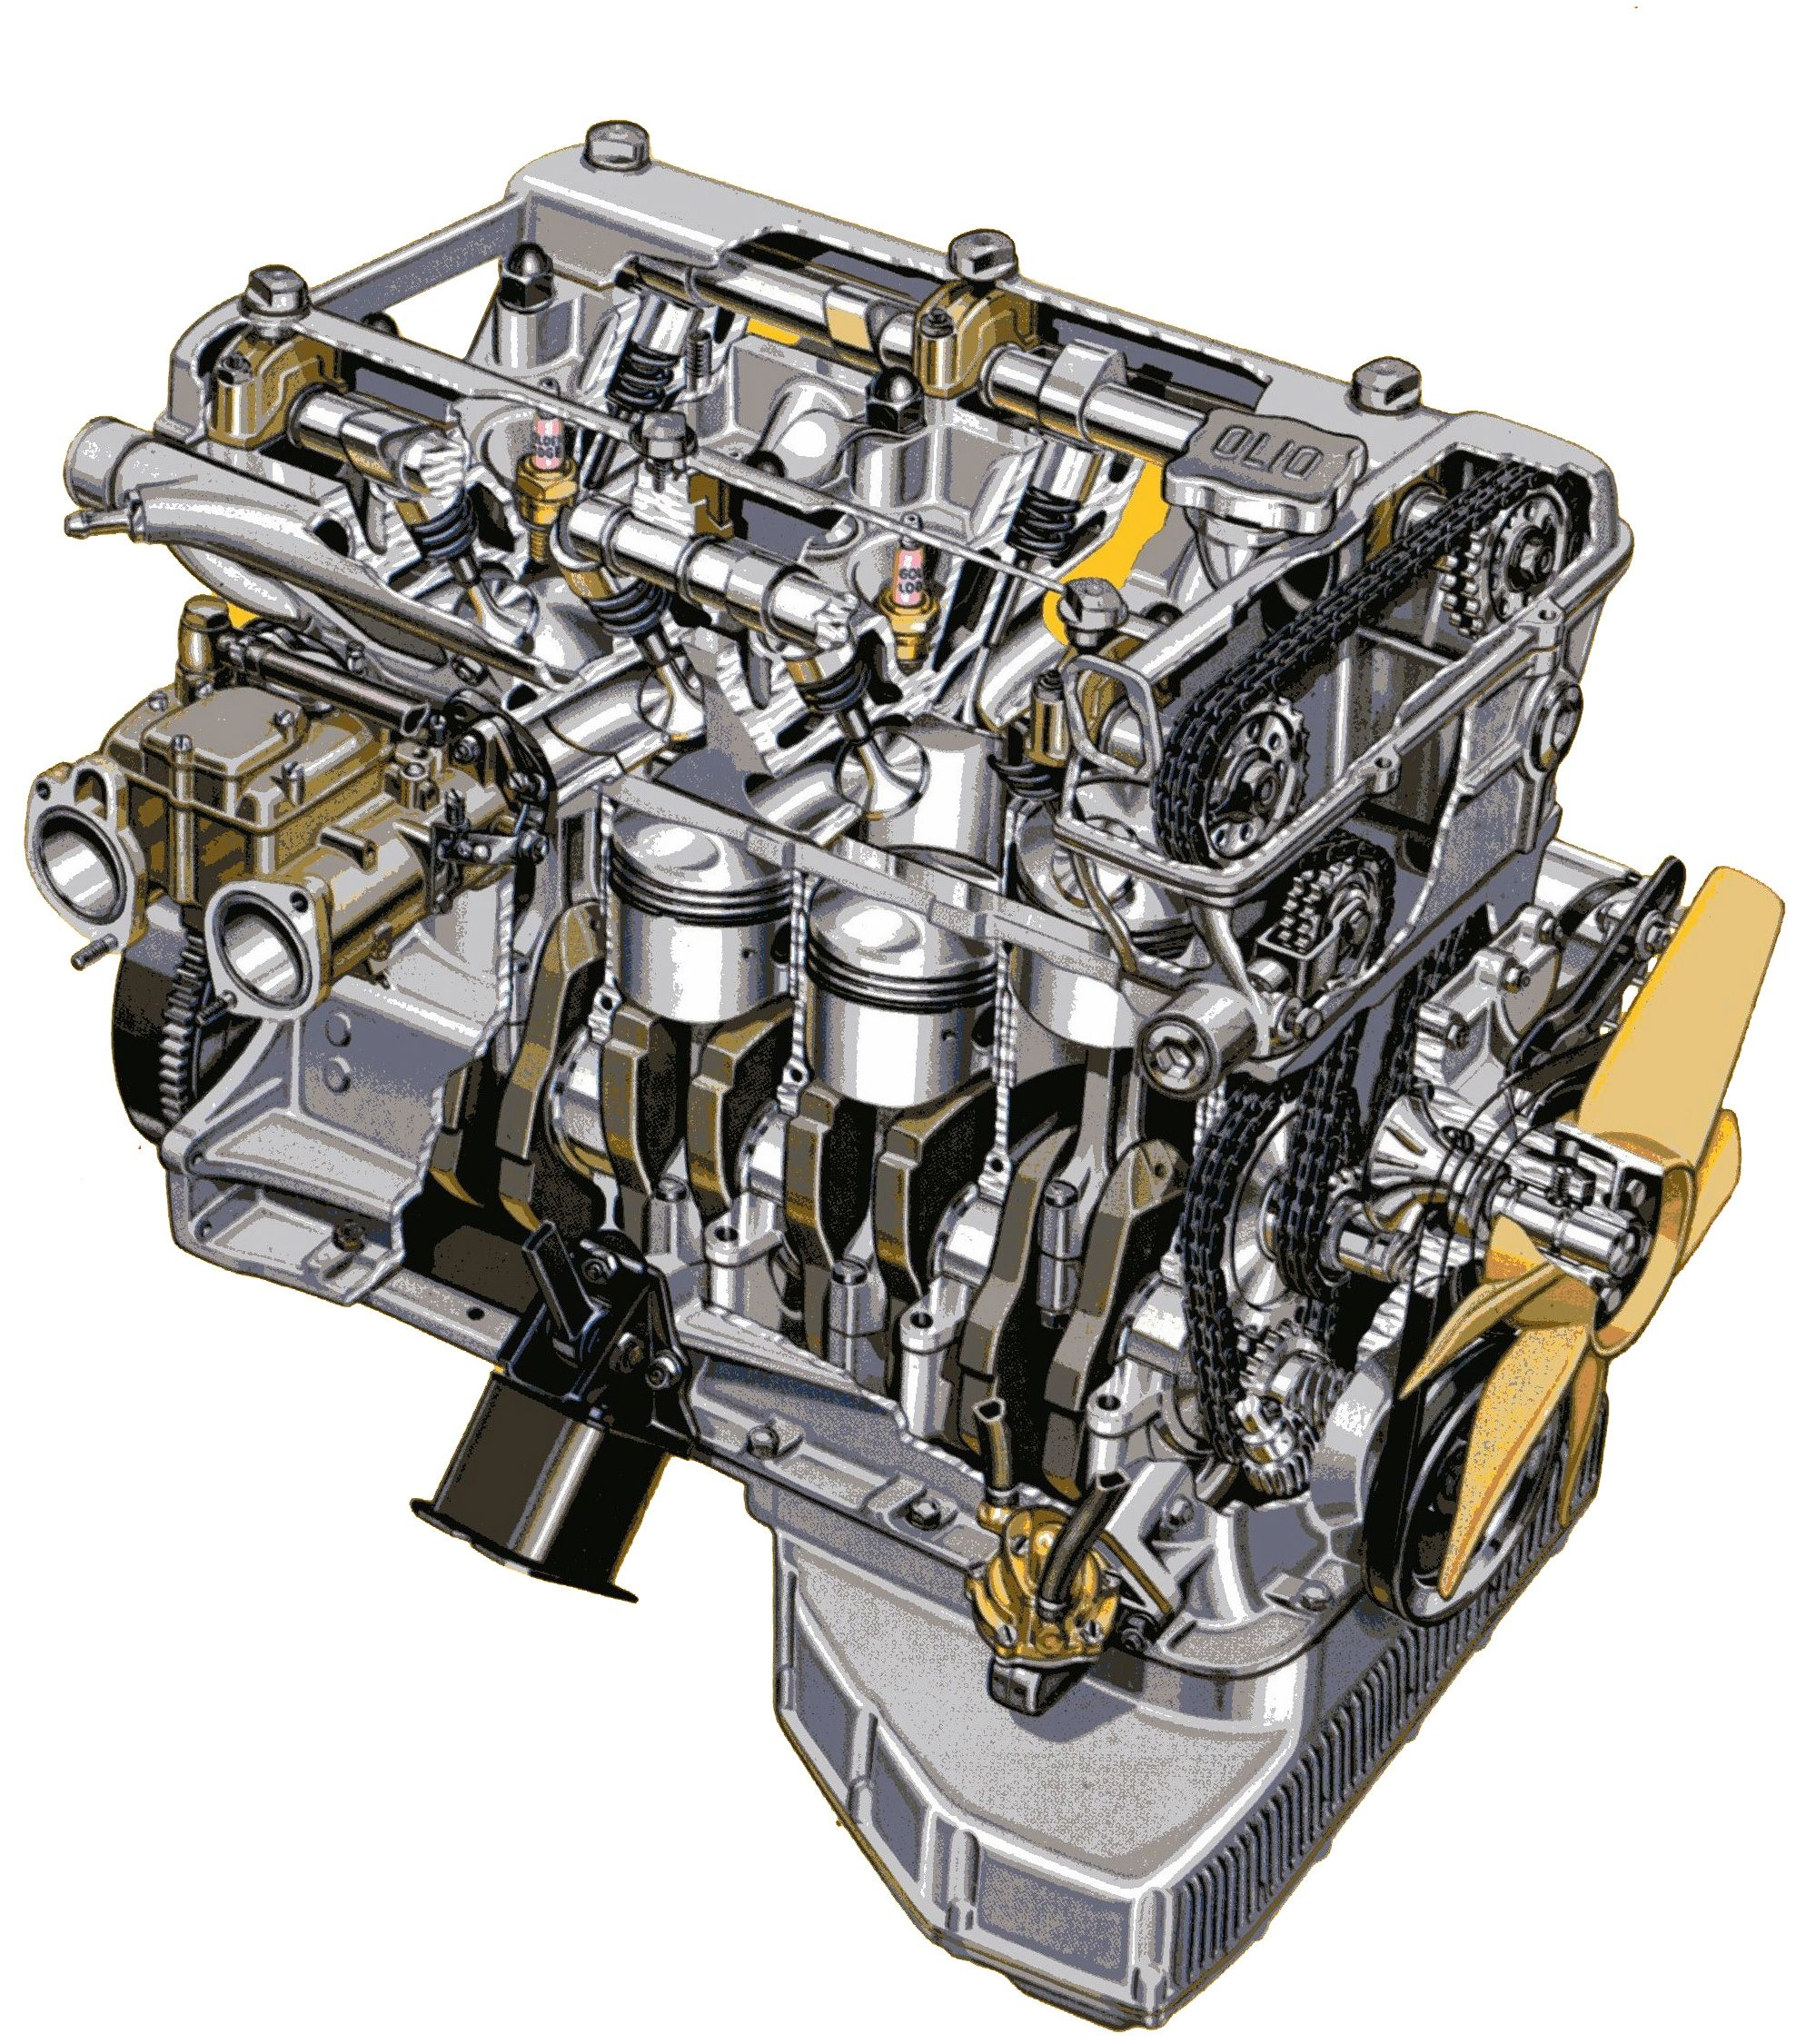 small resolution of spider alfa romeo nord engine diagram simple wiring diagrams shankle alfa romeo spider alfa romeo nord engine diagram